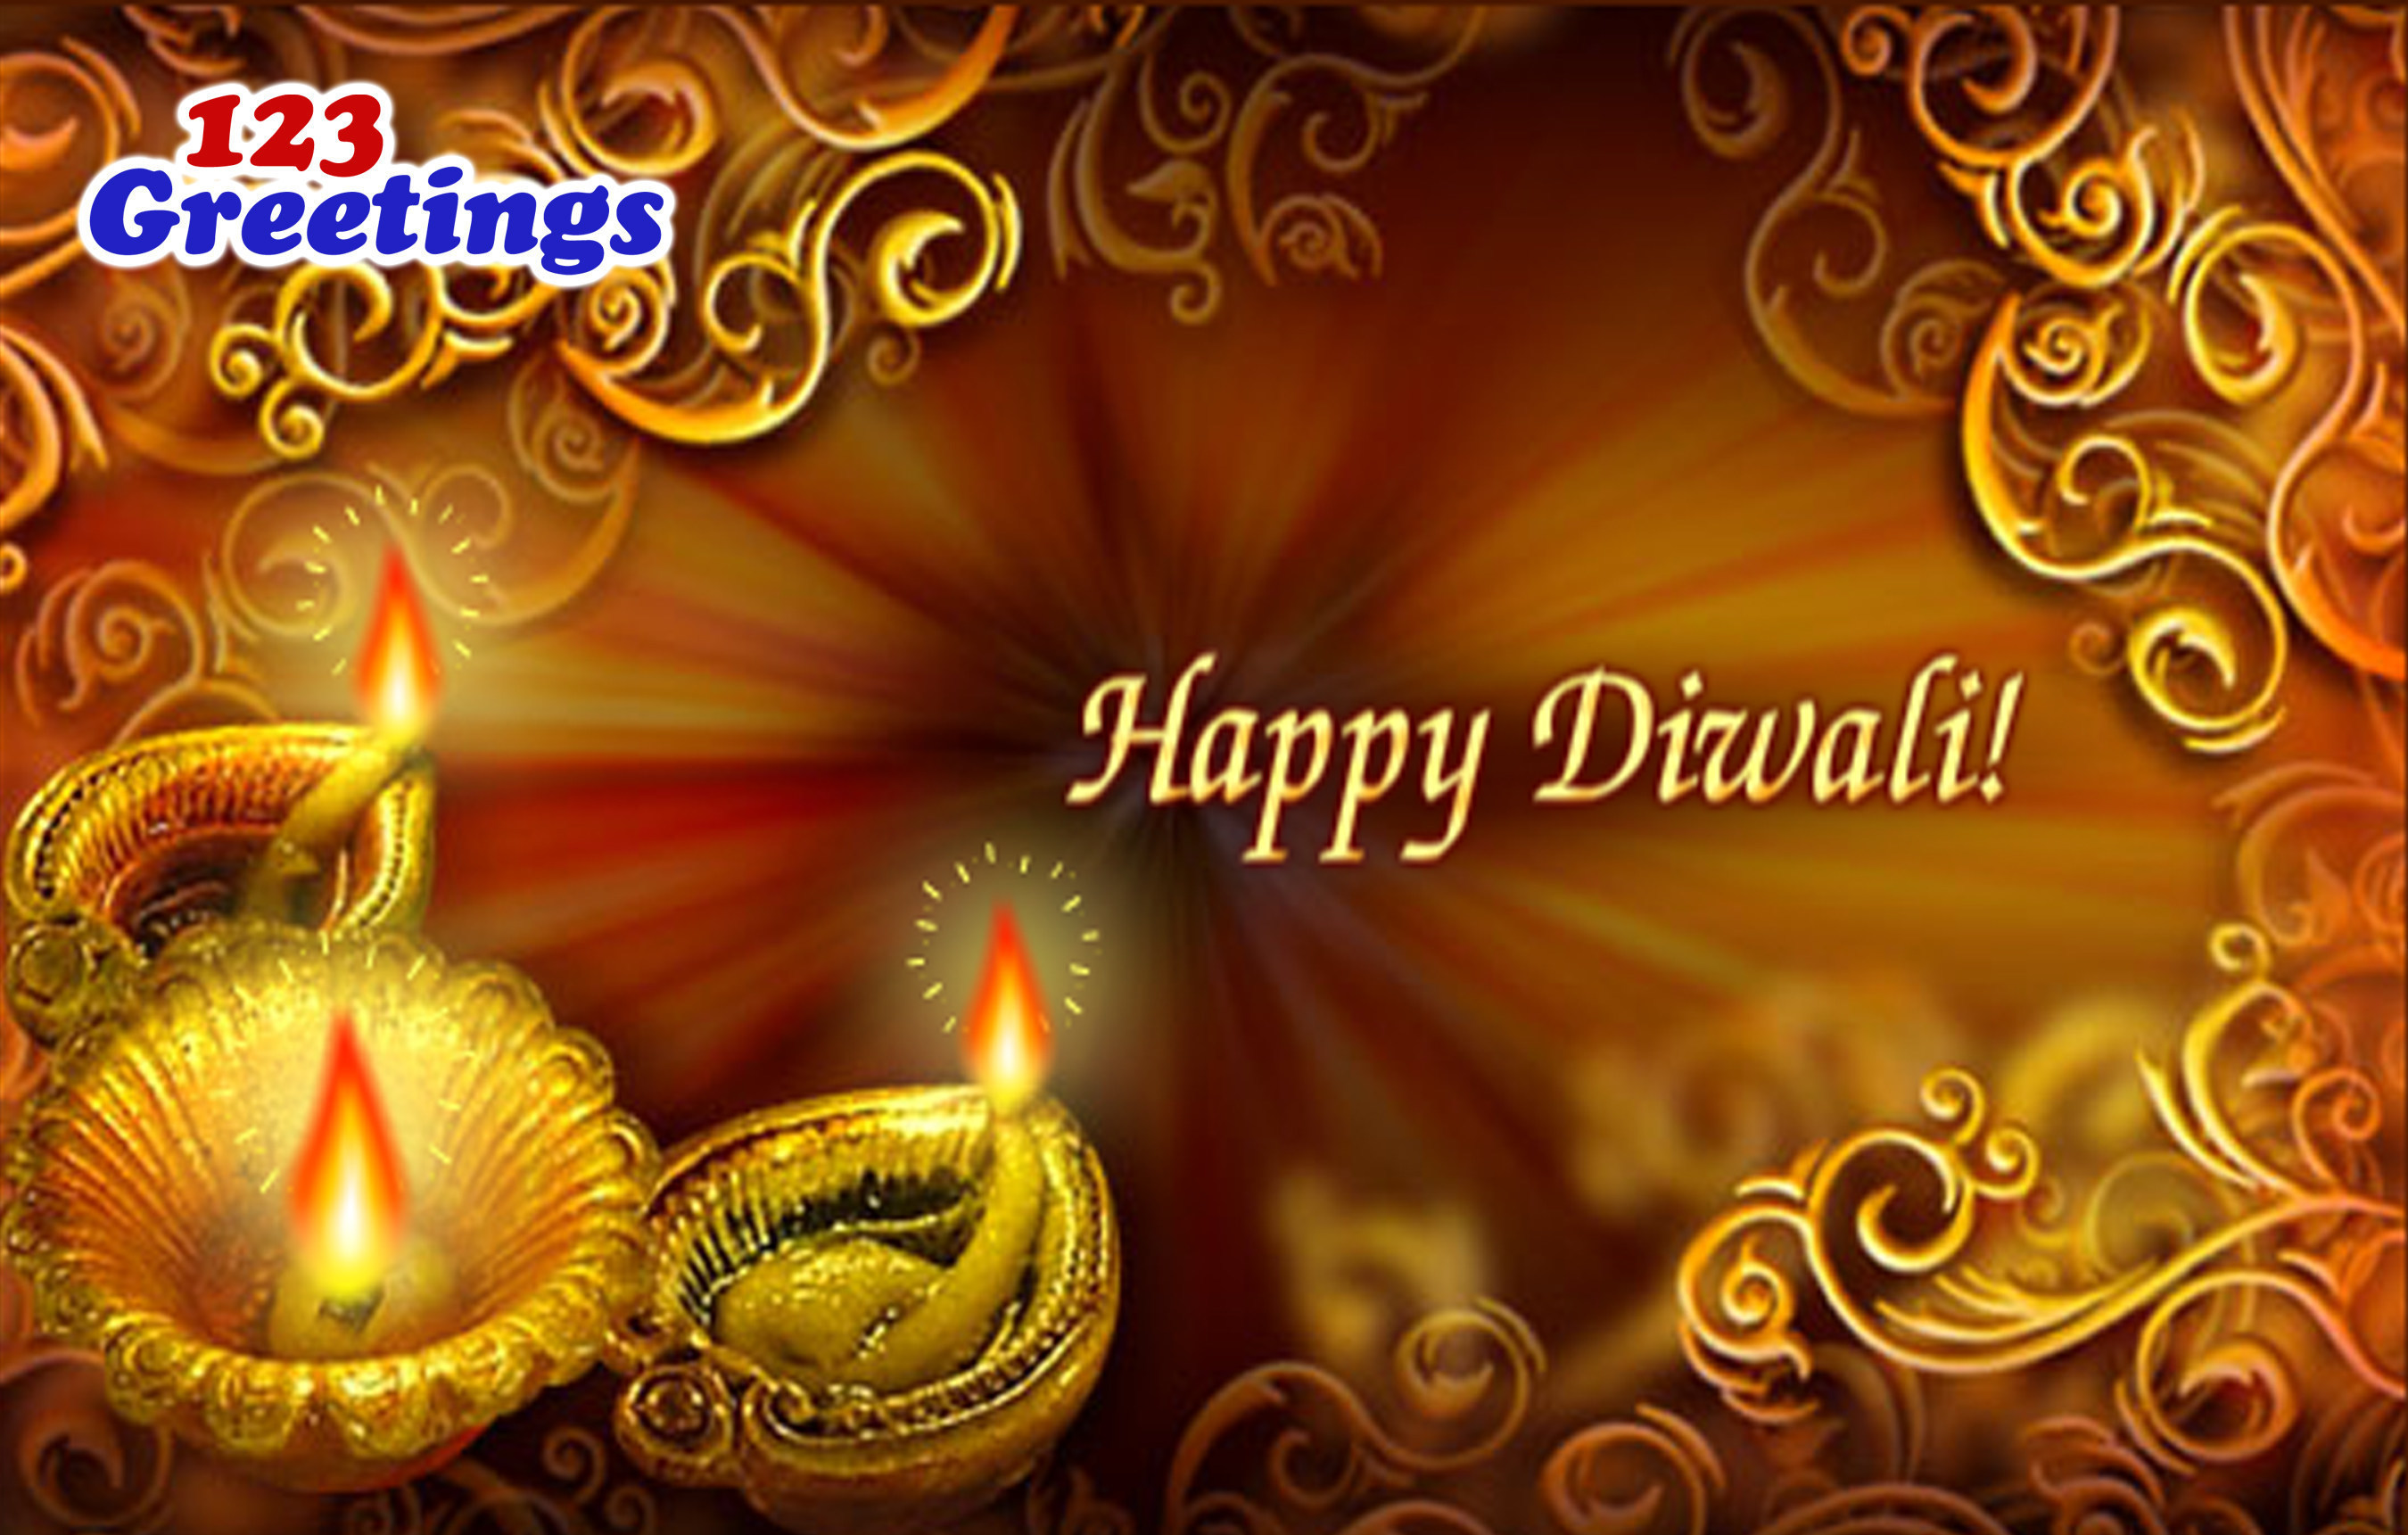 123greetings Diwali Ecards Brighten The Festivity Just Before The